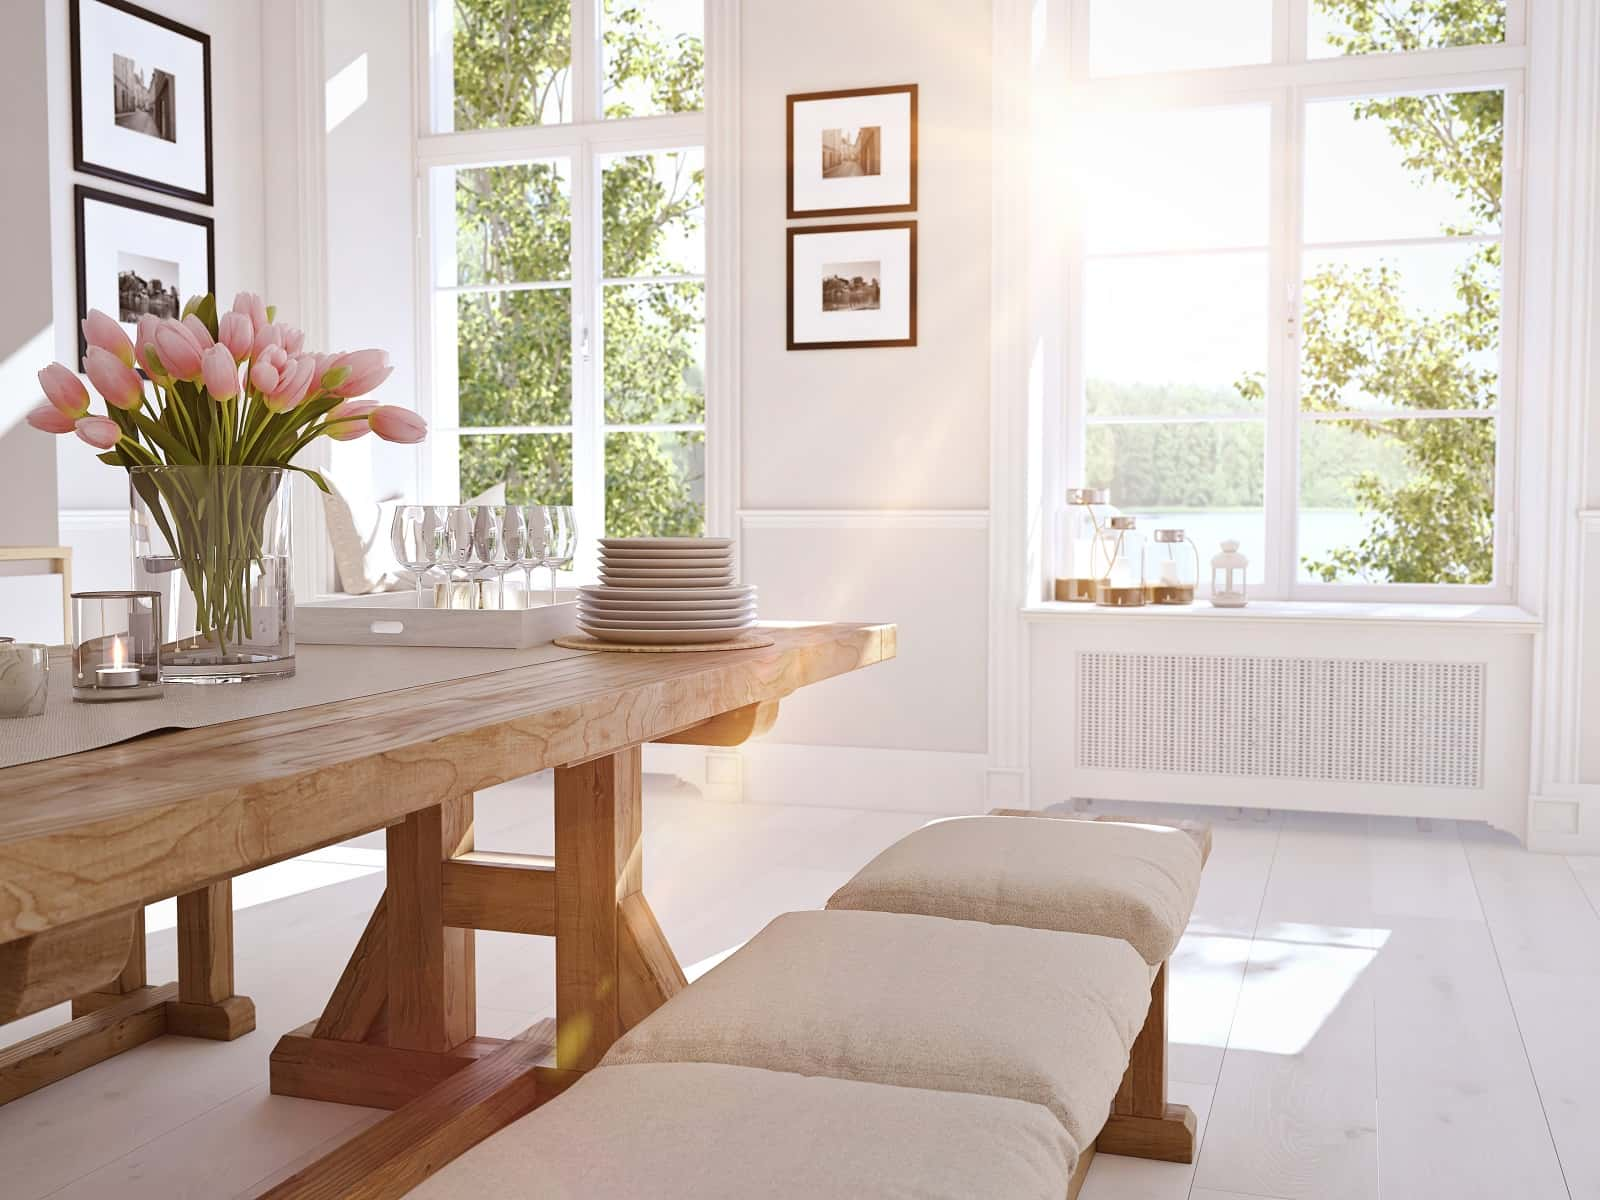 6 Beautiful Ways To Decorate Your House With Flowers. Large sunny dining room with large wooden table and a bench with pillows